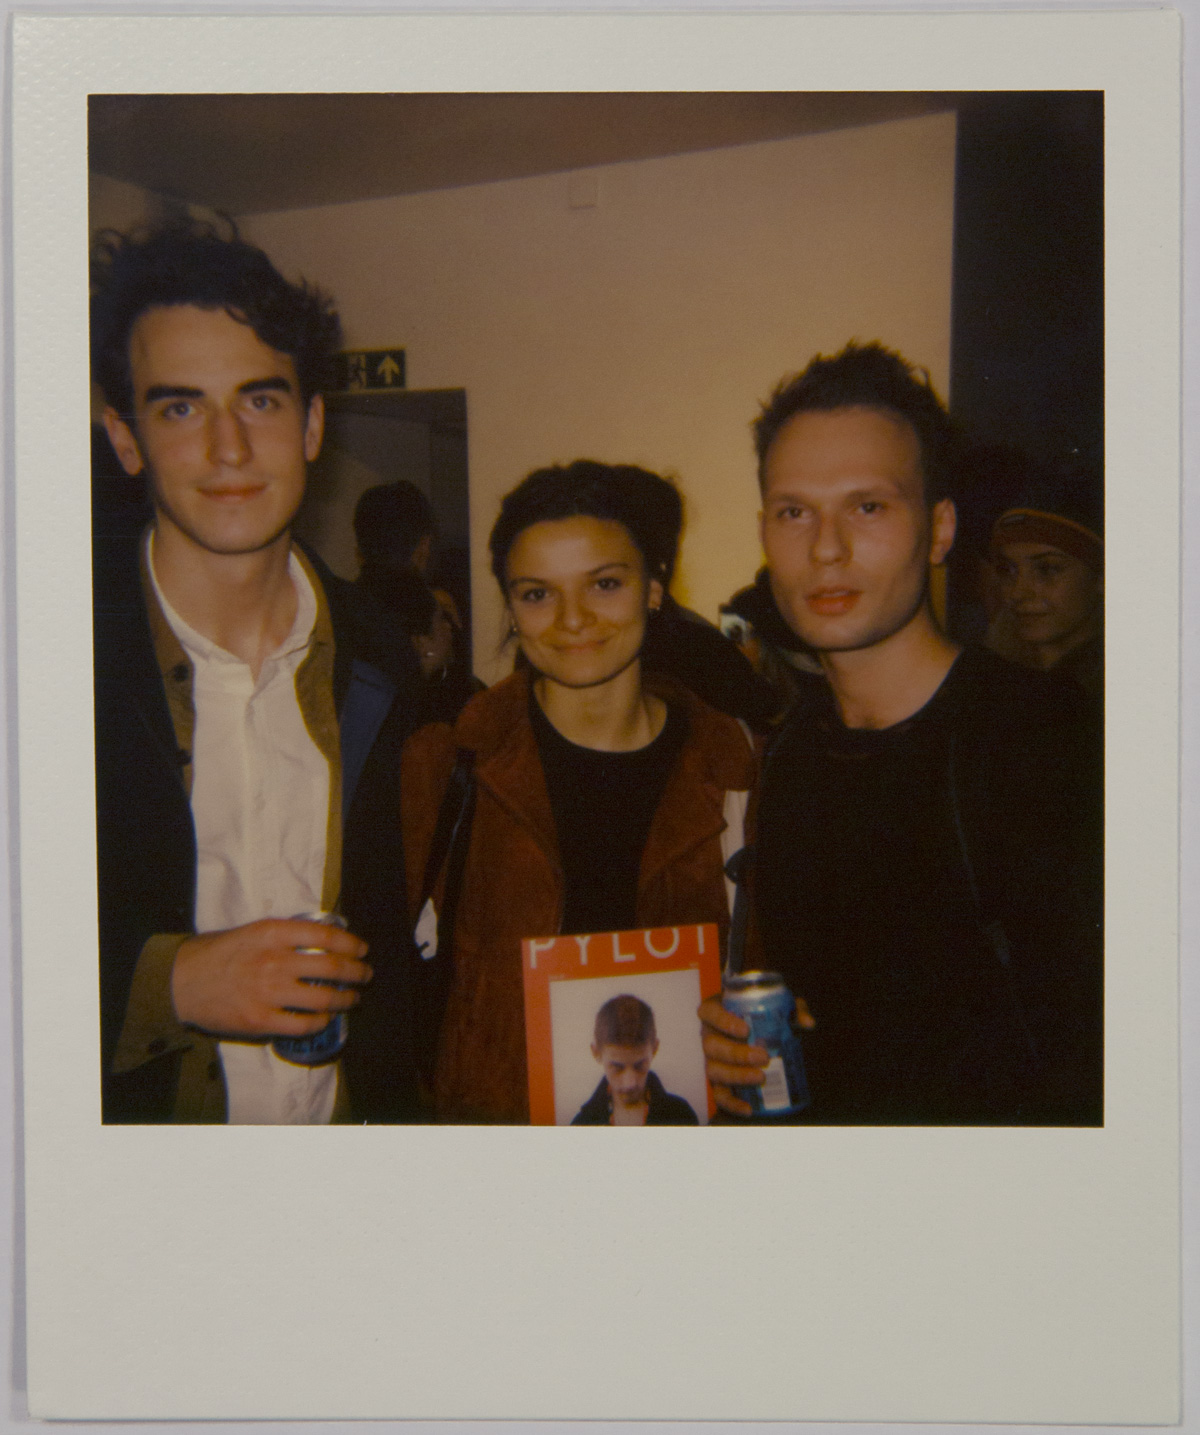 PYLOT Magazine Issue 03 The status Quo Launch Party sponsored by BrewDog